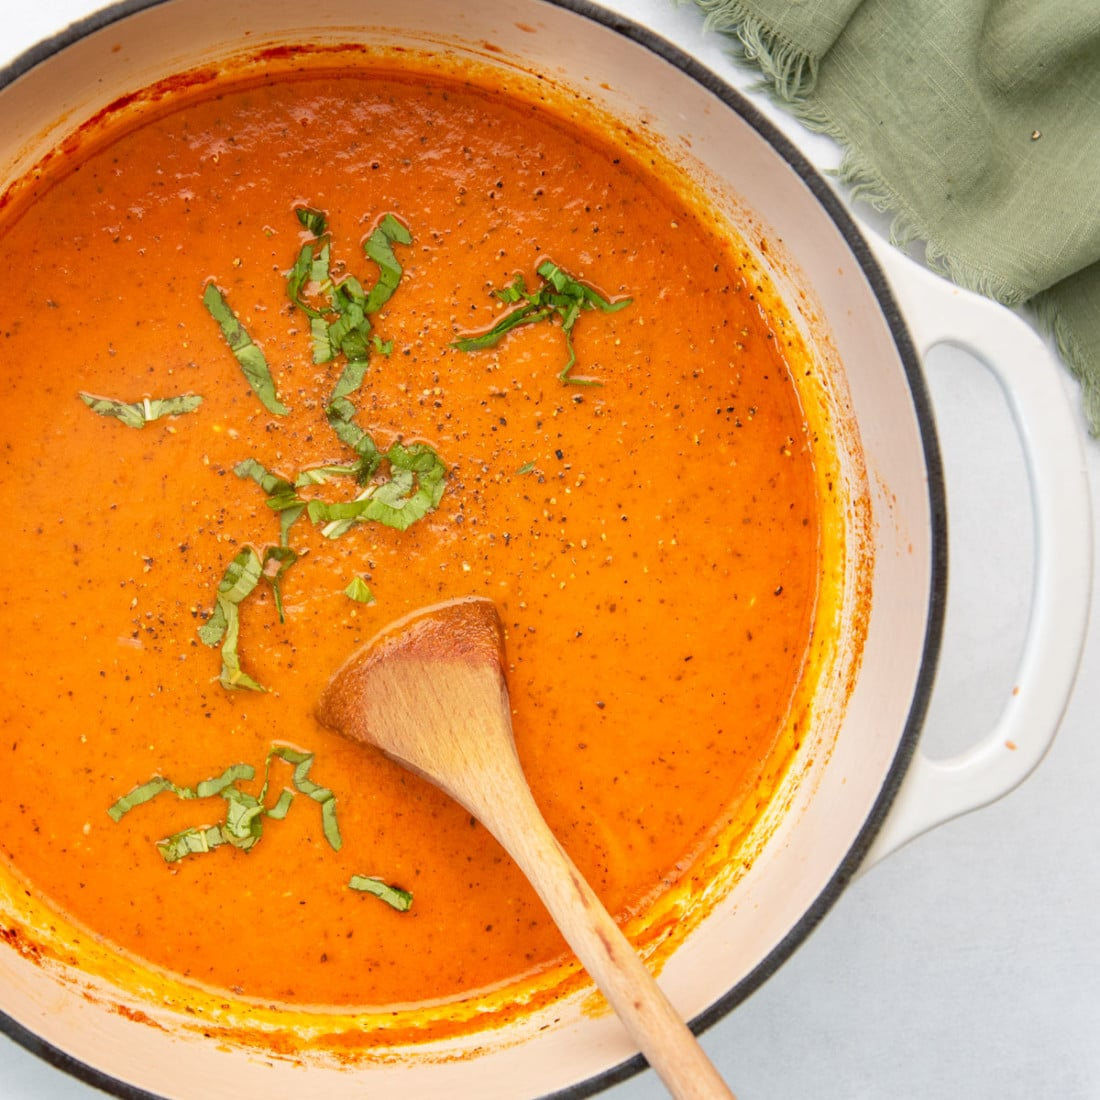 pot of tomato soup with wooden spoon